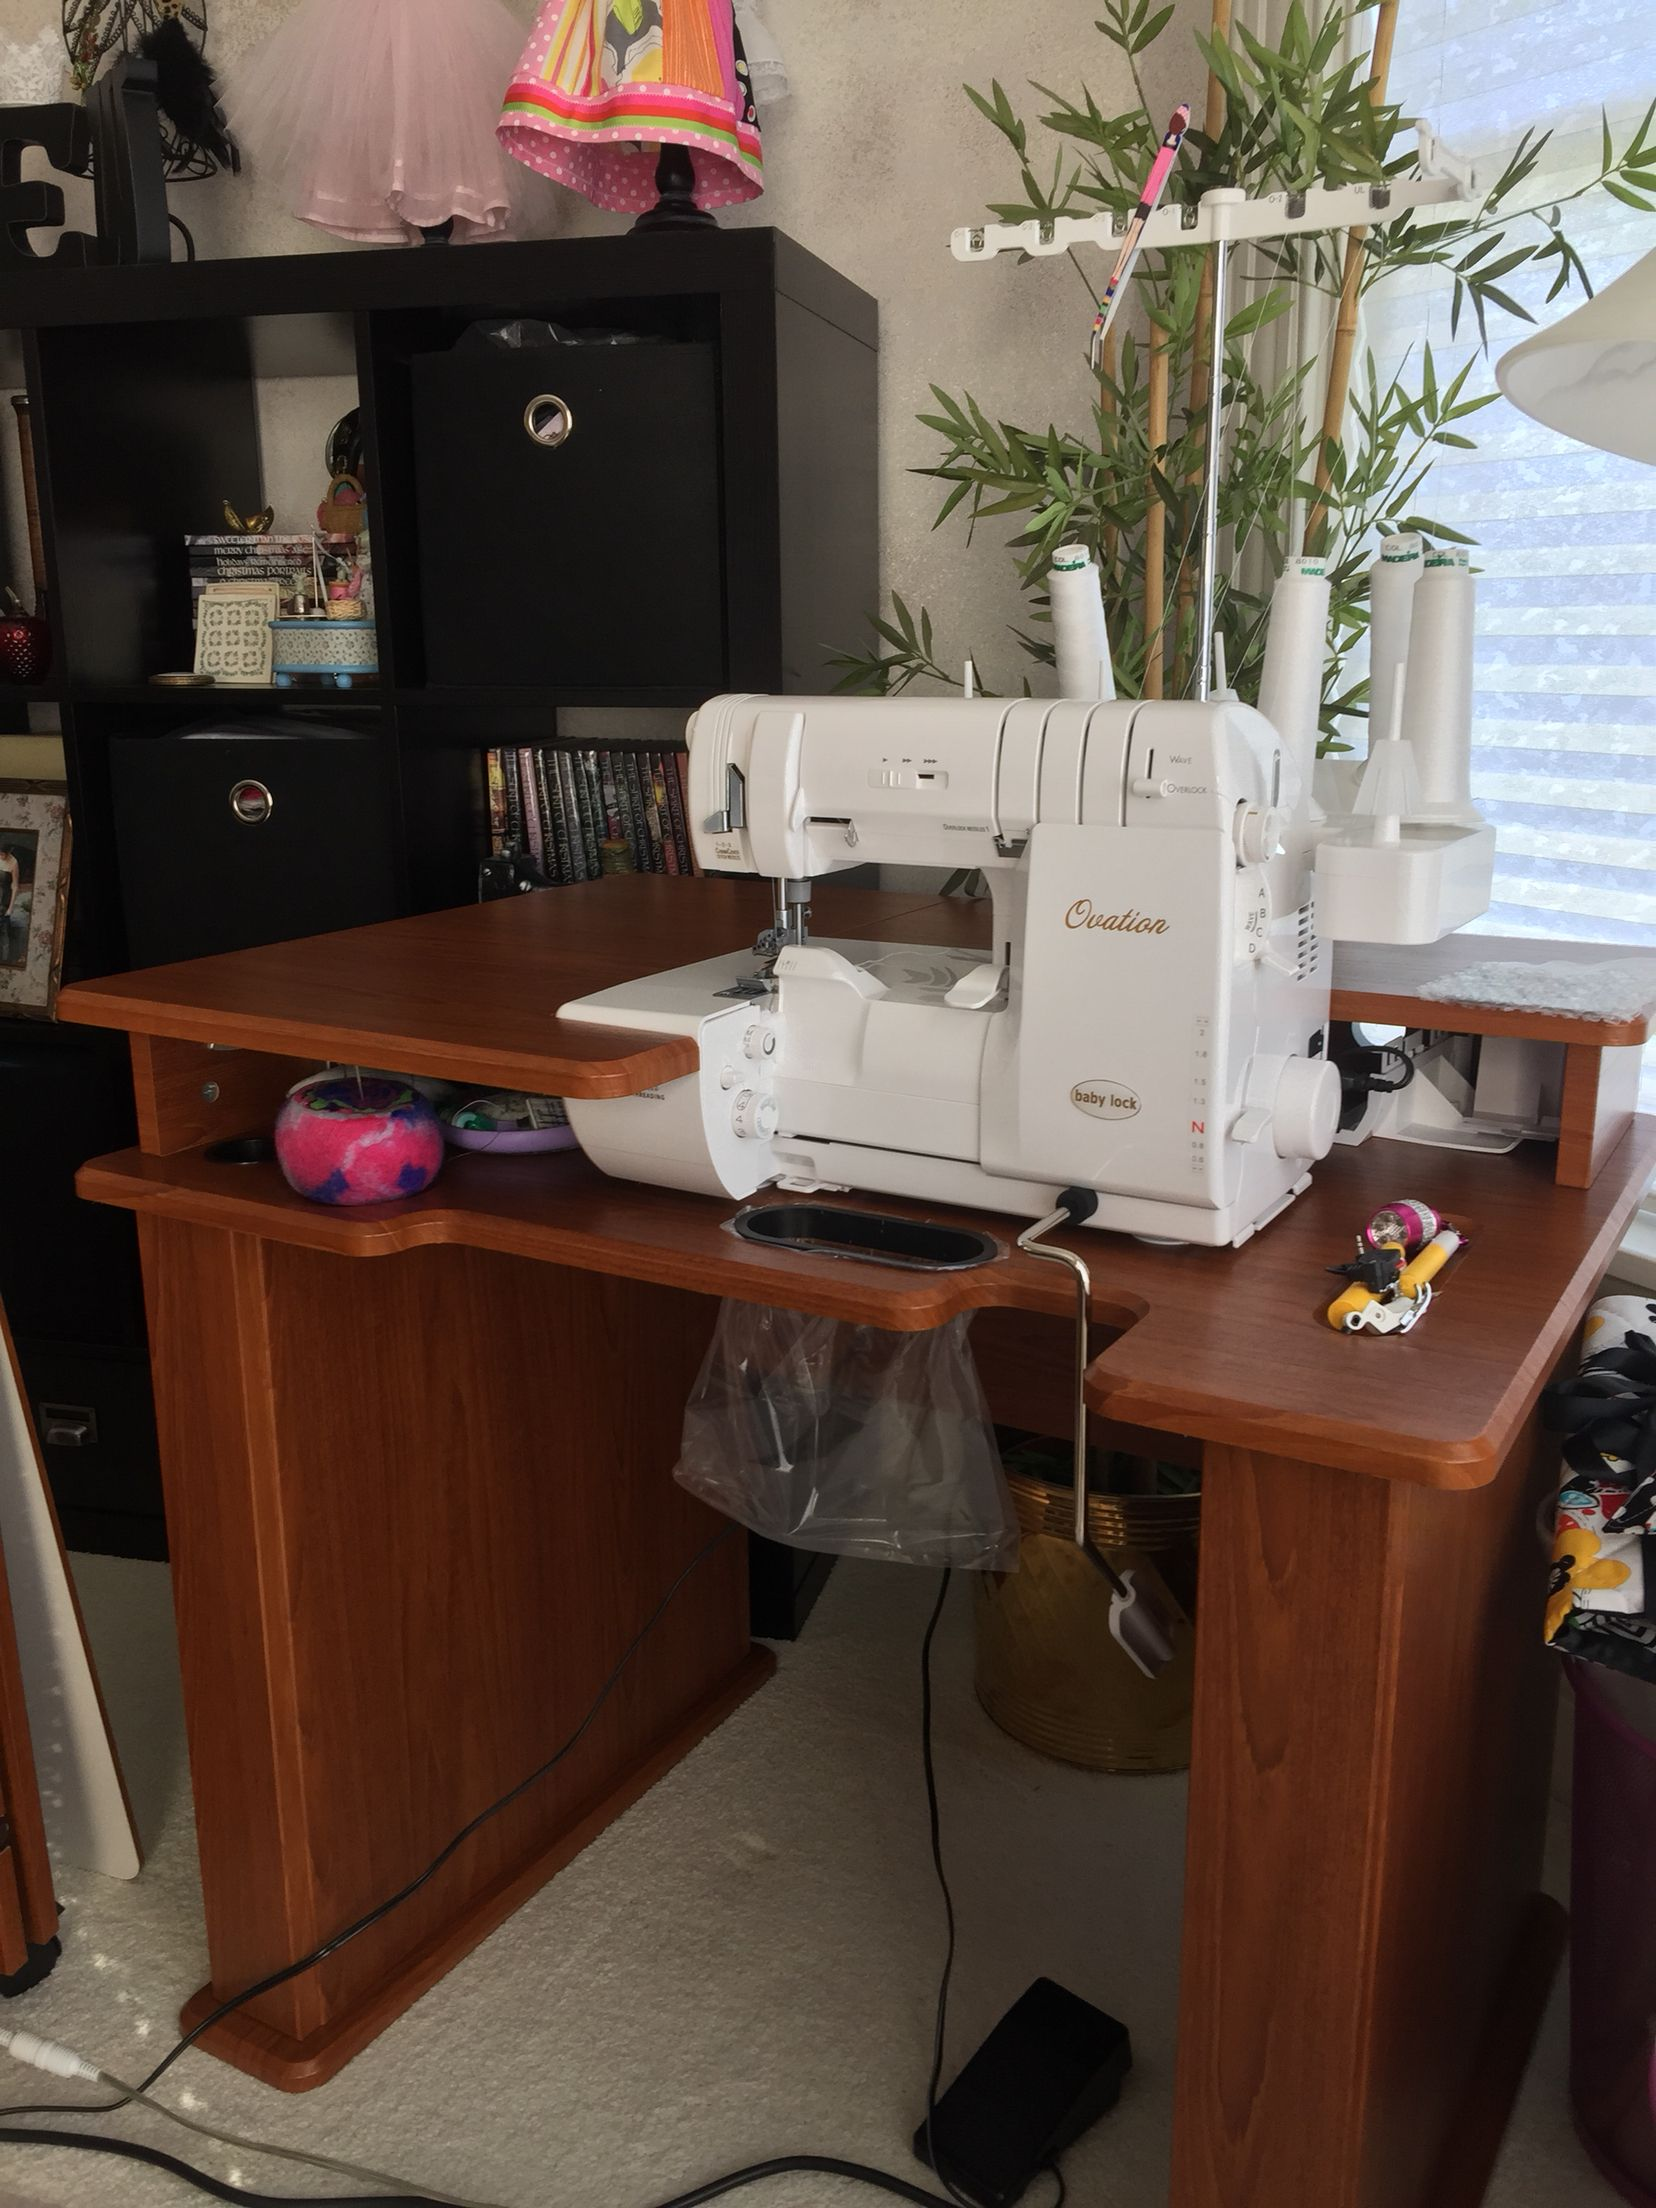 Babylock Ovation Serger And Koala Cabinet In Action!